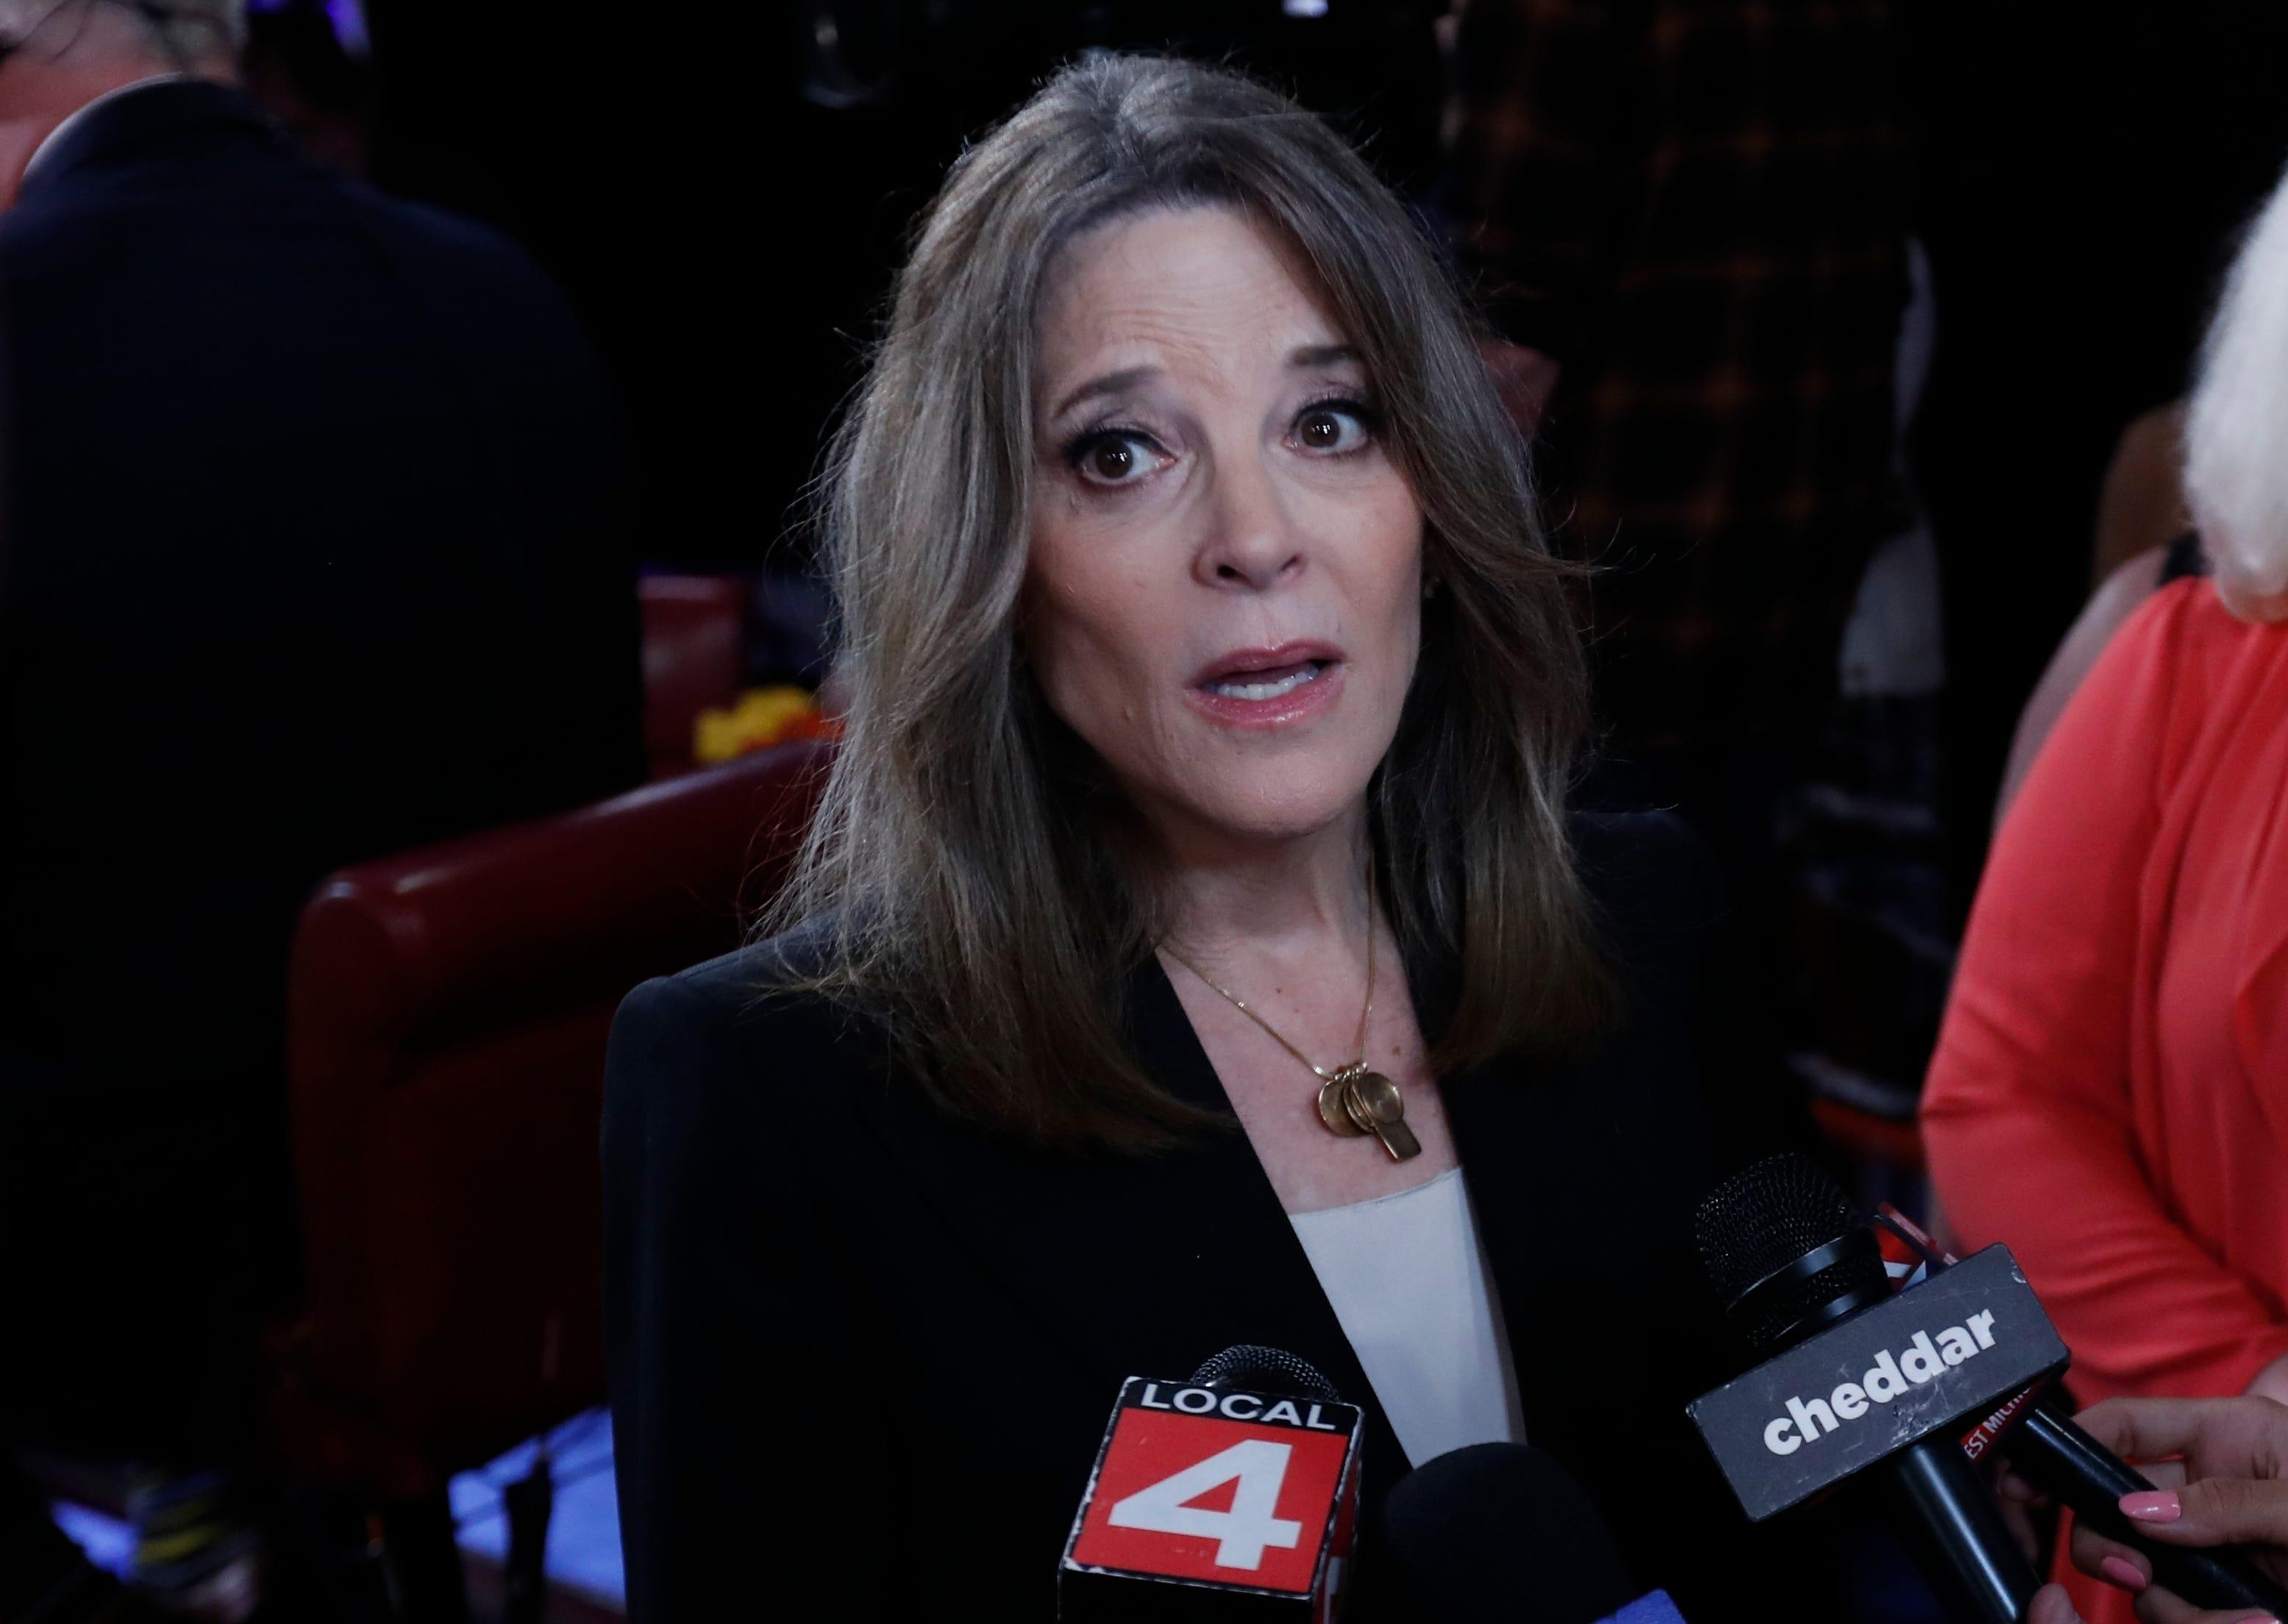 Marianne Williamson isn't on the debate stage but reminded people she's still running